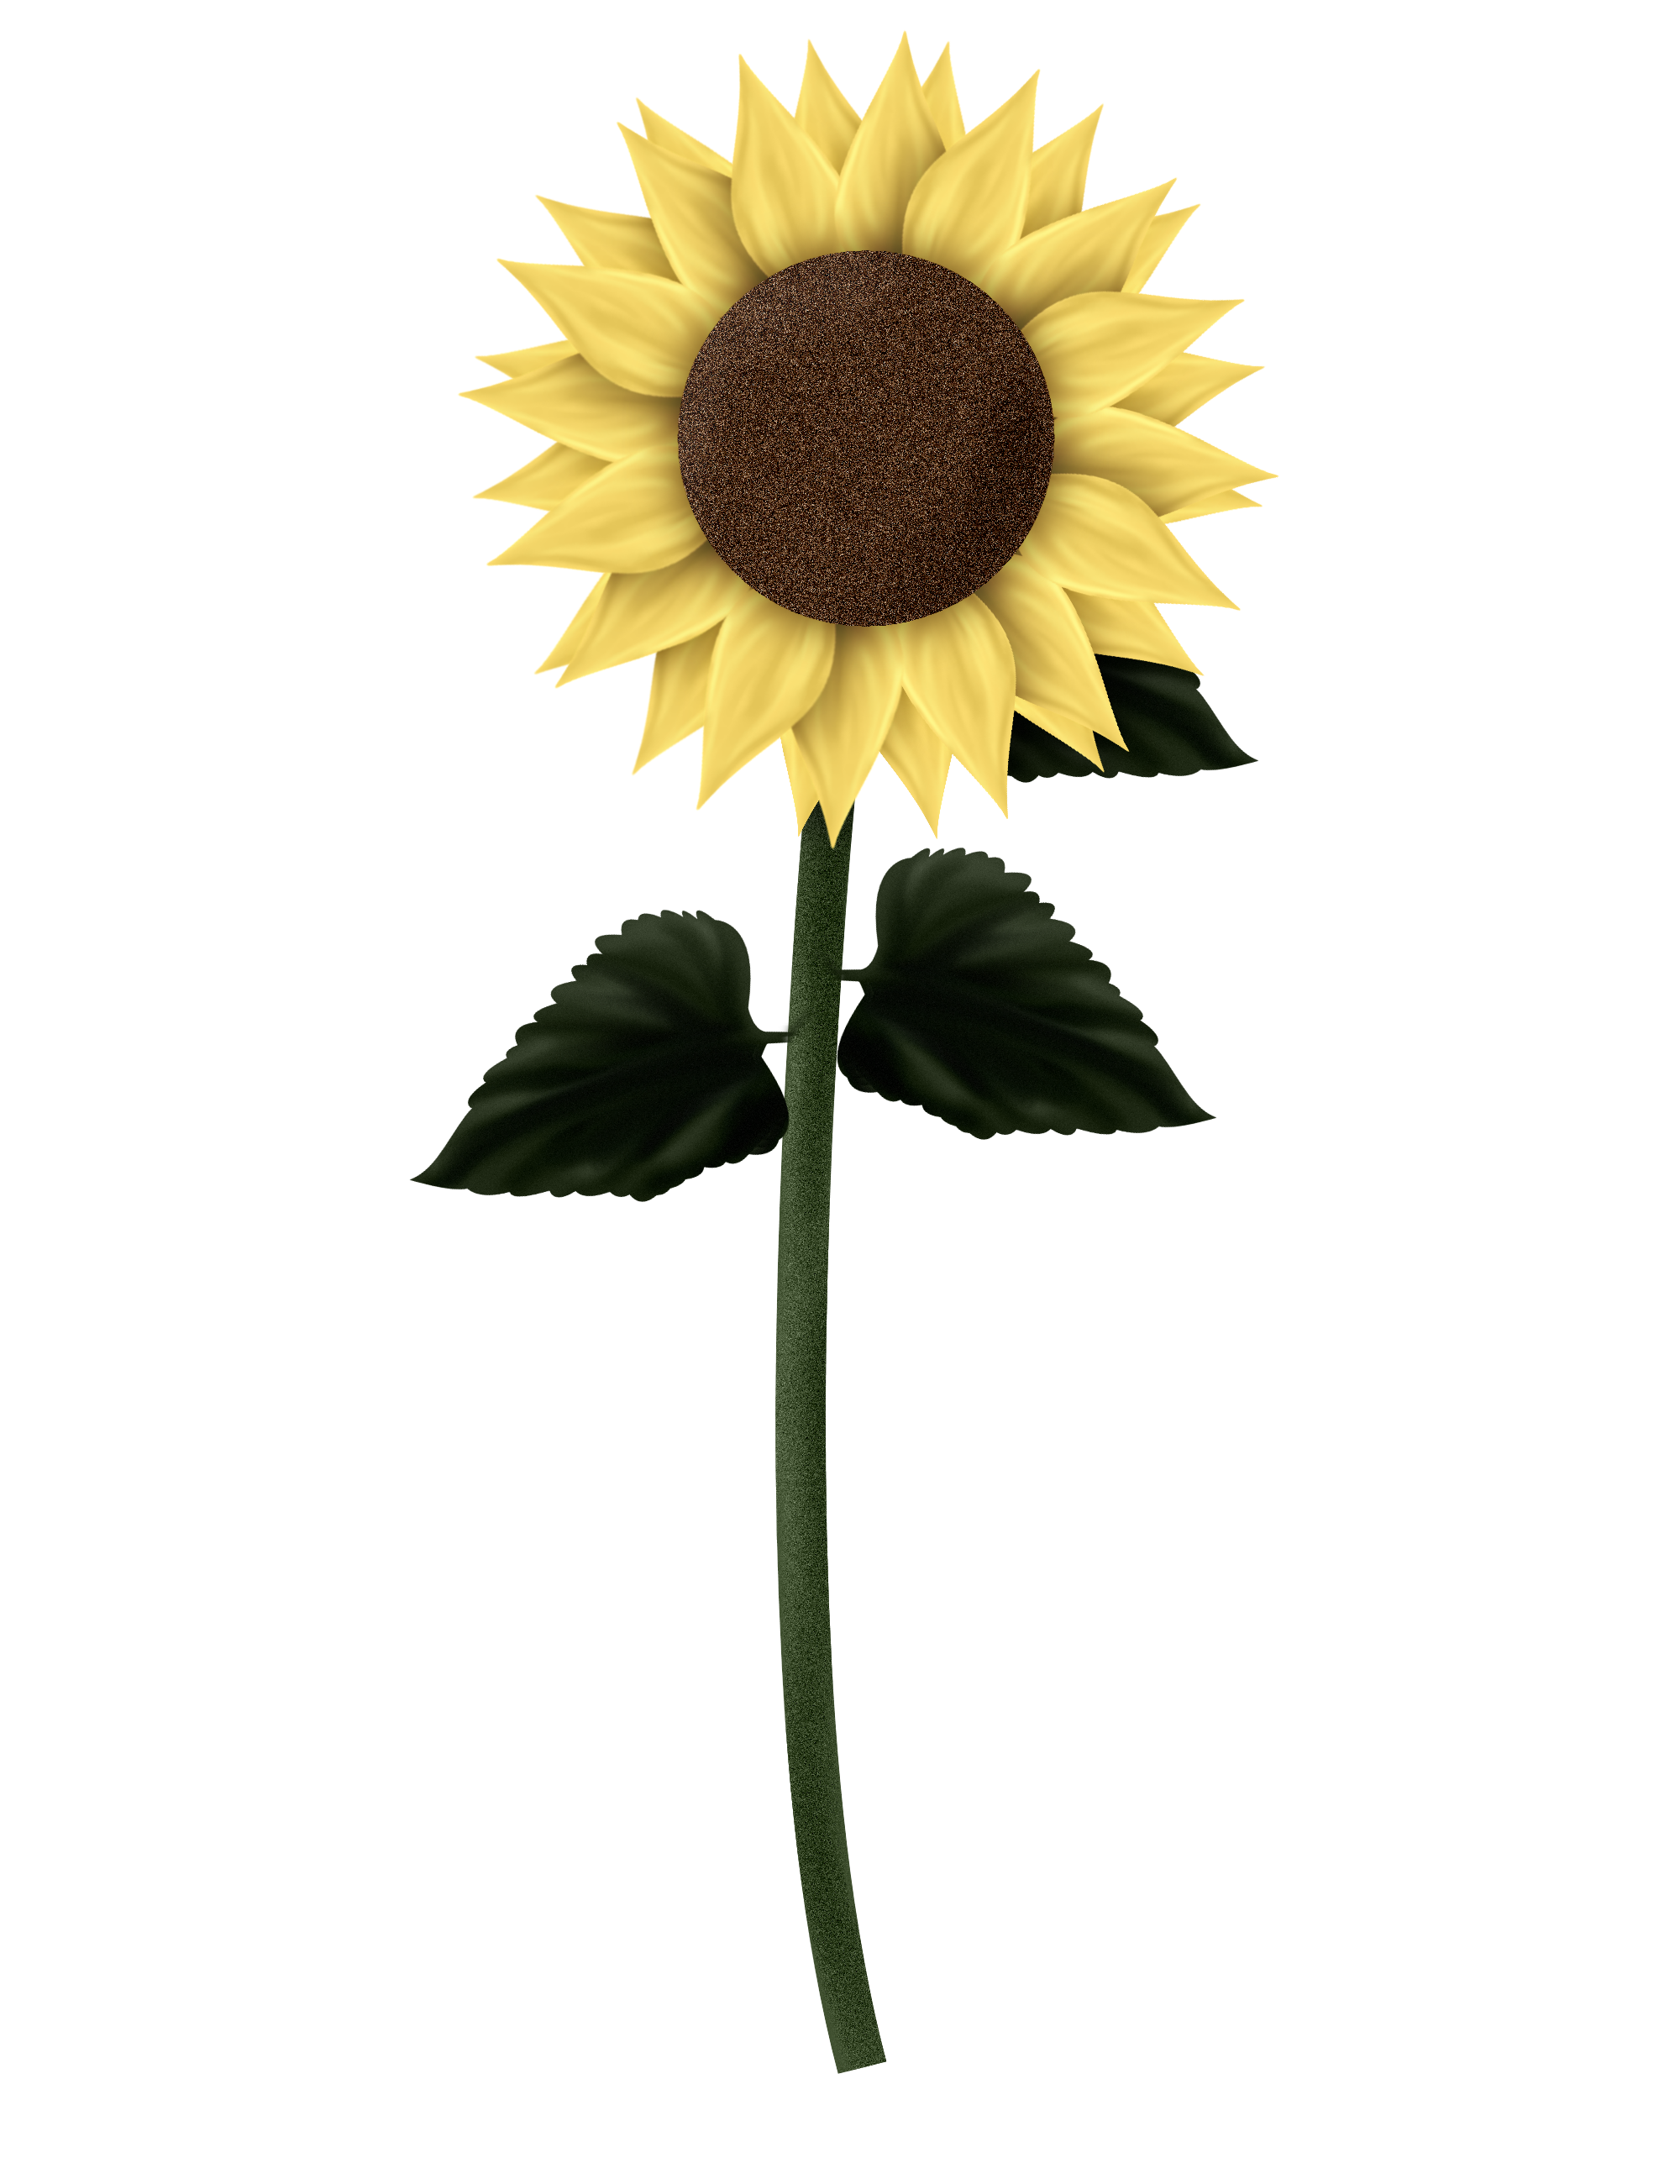 Sunflower clipart tall sunflower. Sunflowers png transparent images